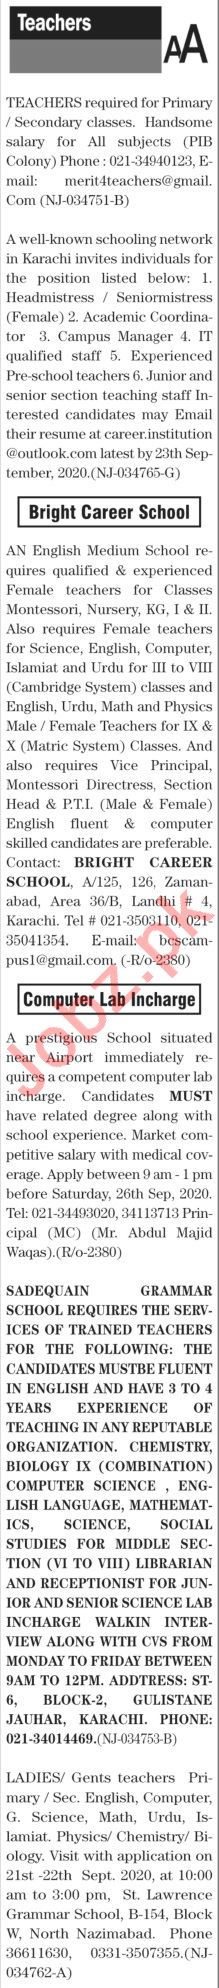 The News Sunday Classified Ads 20 Sept 2020 for Teachers